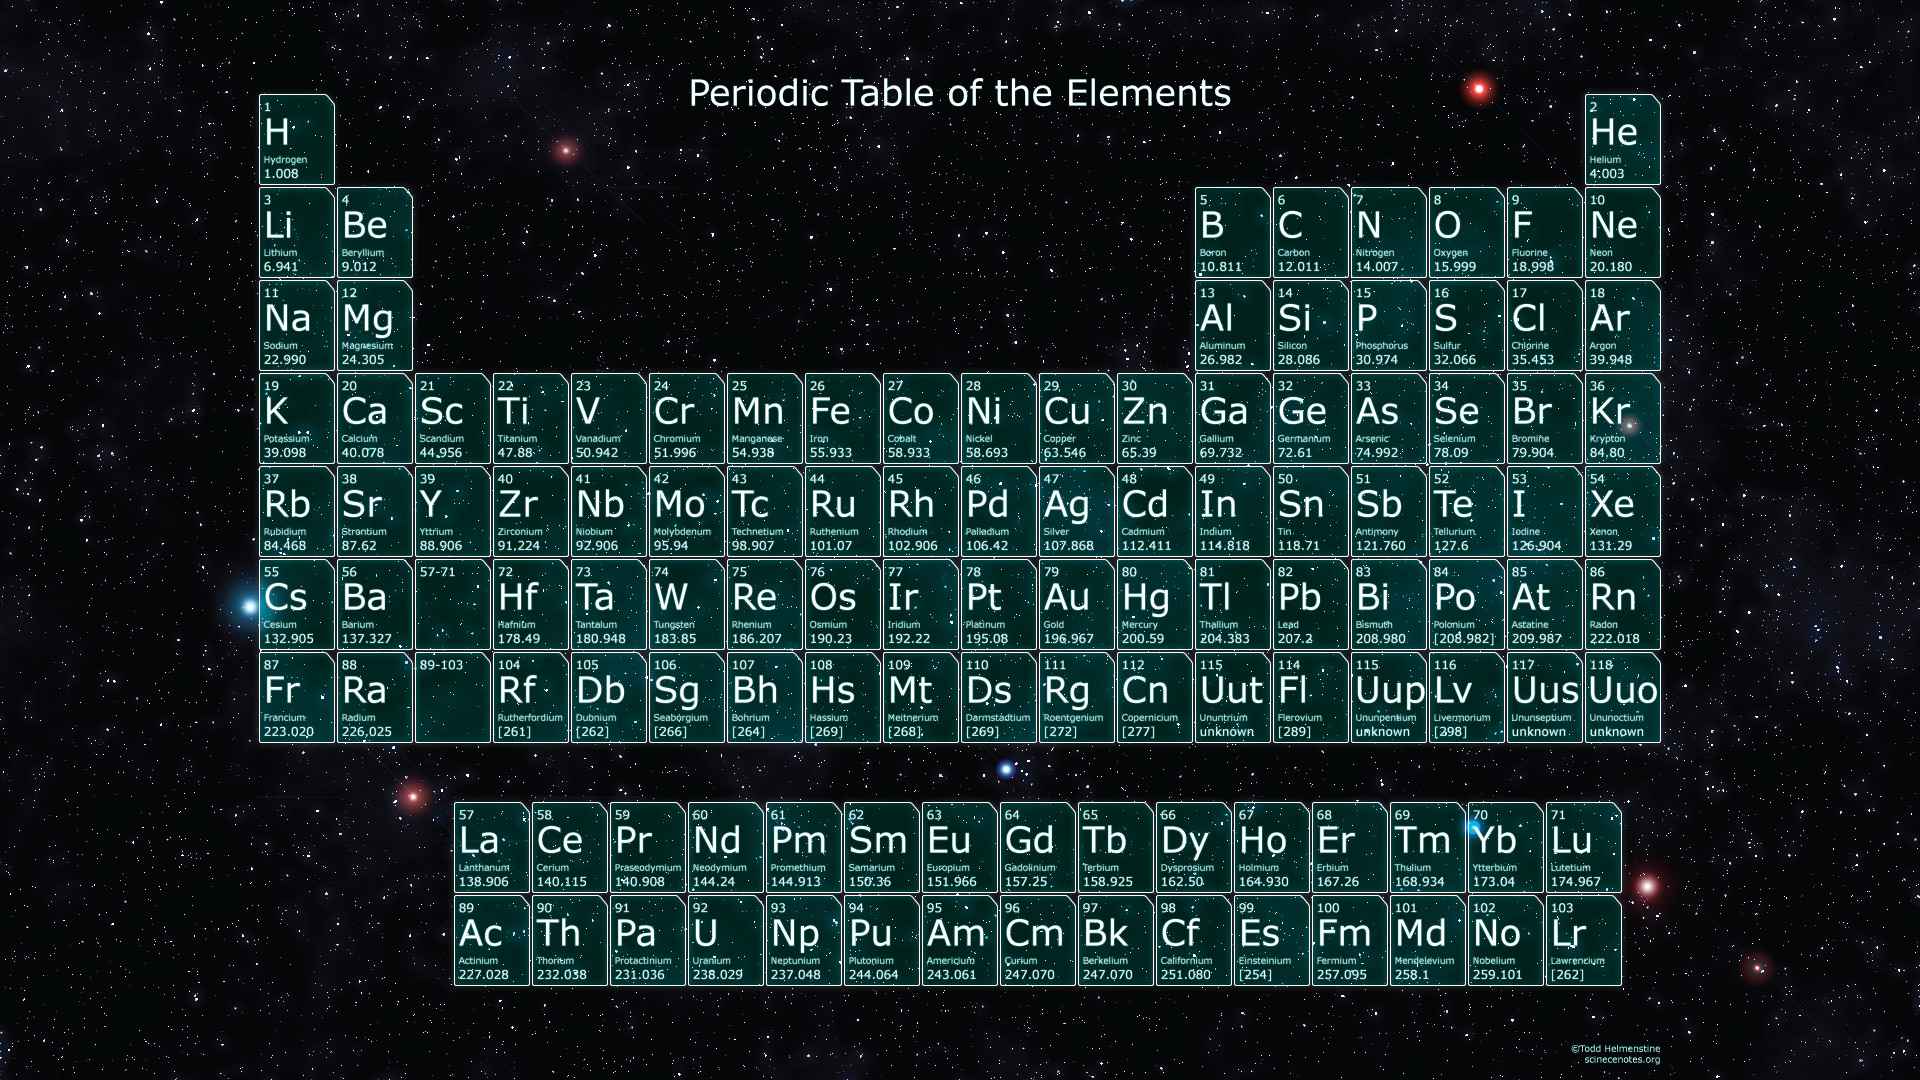 Hd periodic table wallpaper 70 images 1920x1080 periodic table of elements wallpaper cool periodic table wallpaper troqhpia urtaz Images